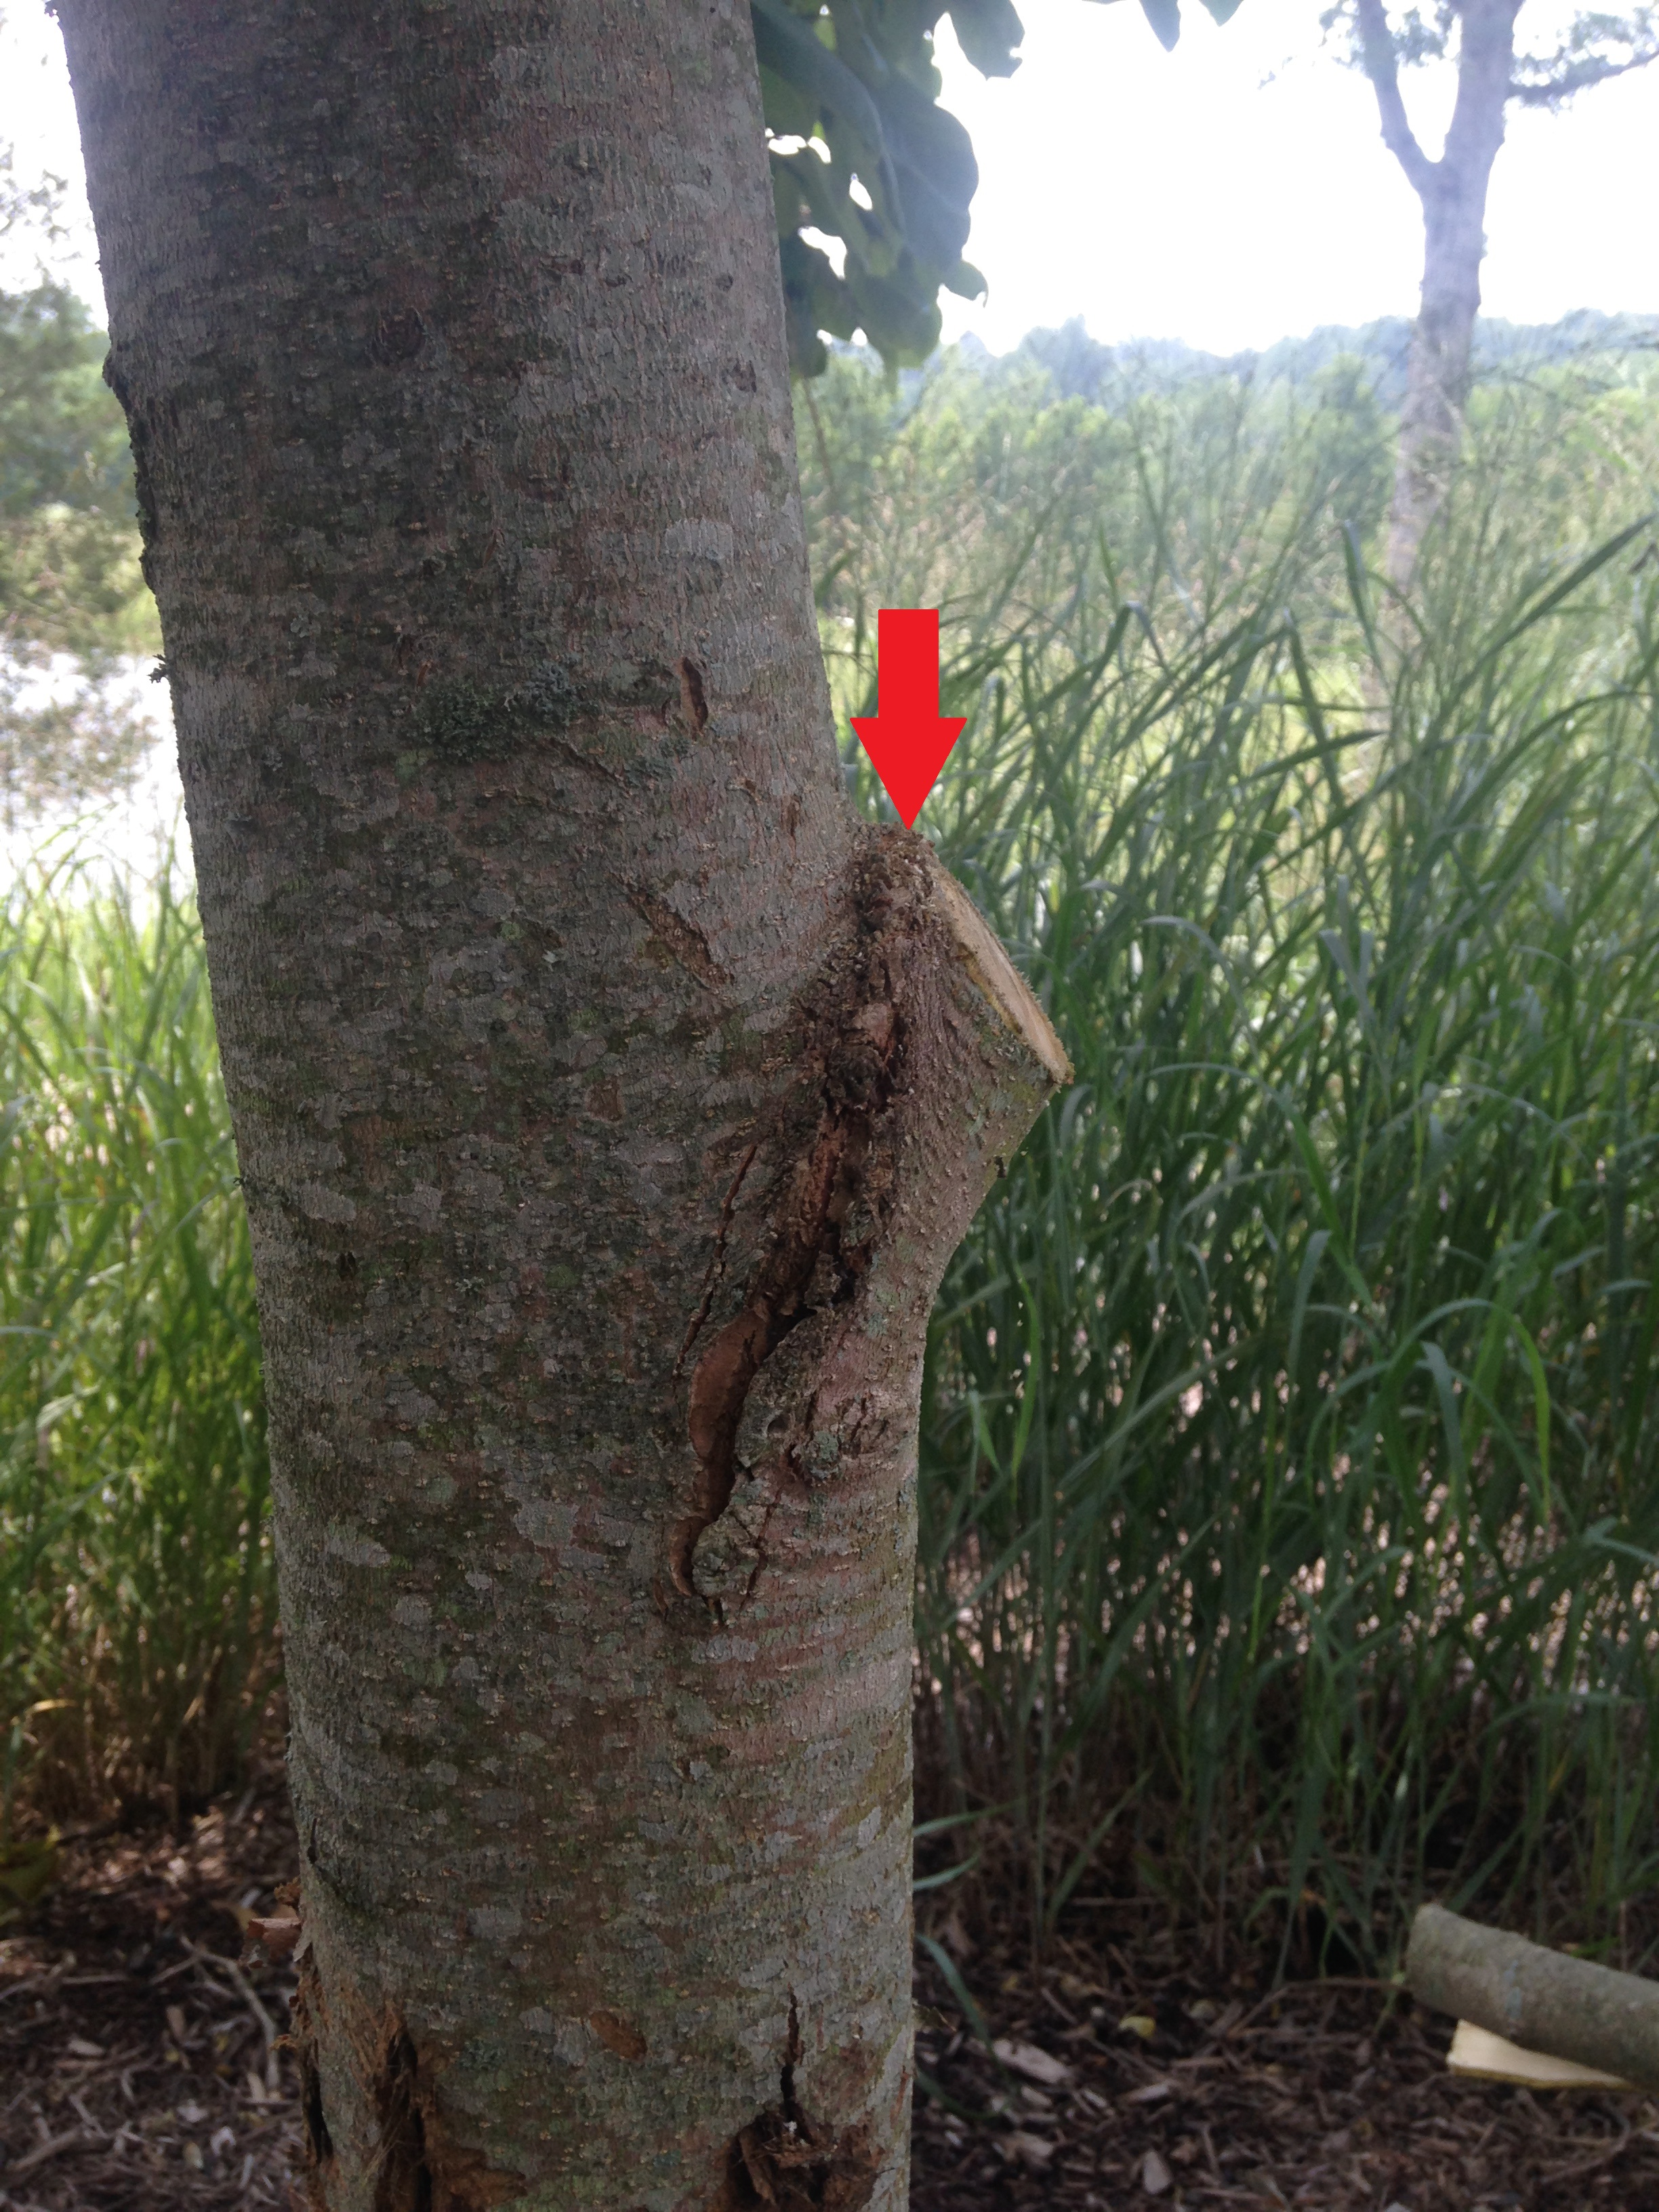 Step 3: make your final cut just outside the bark ridge (red arrow) at an angle away from the tree